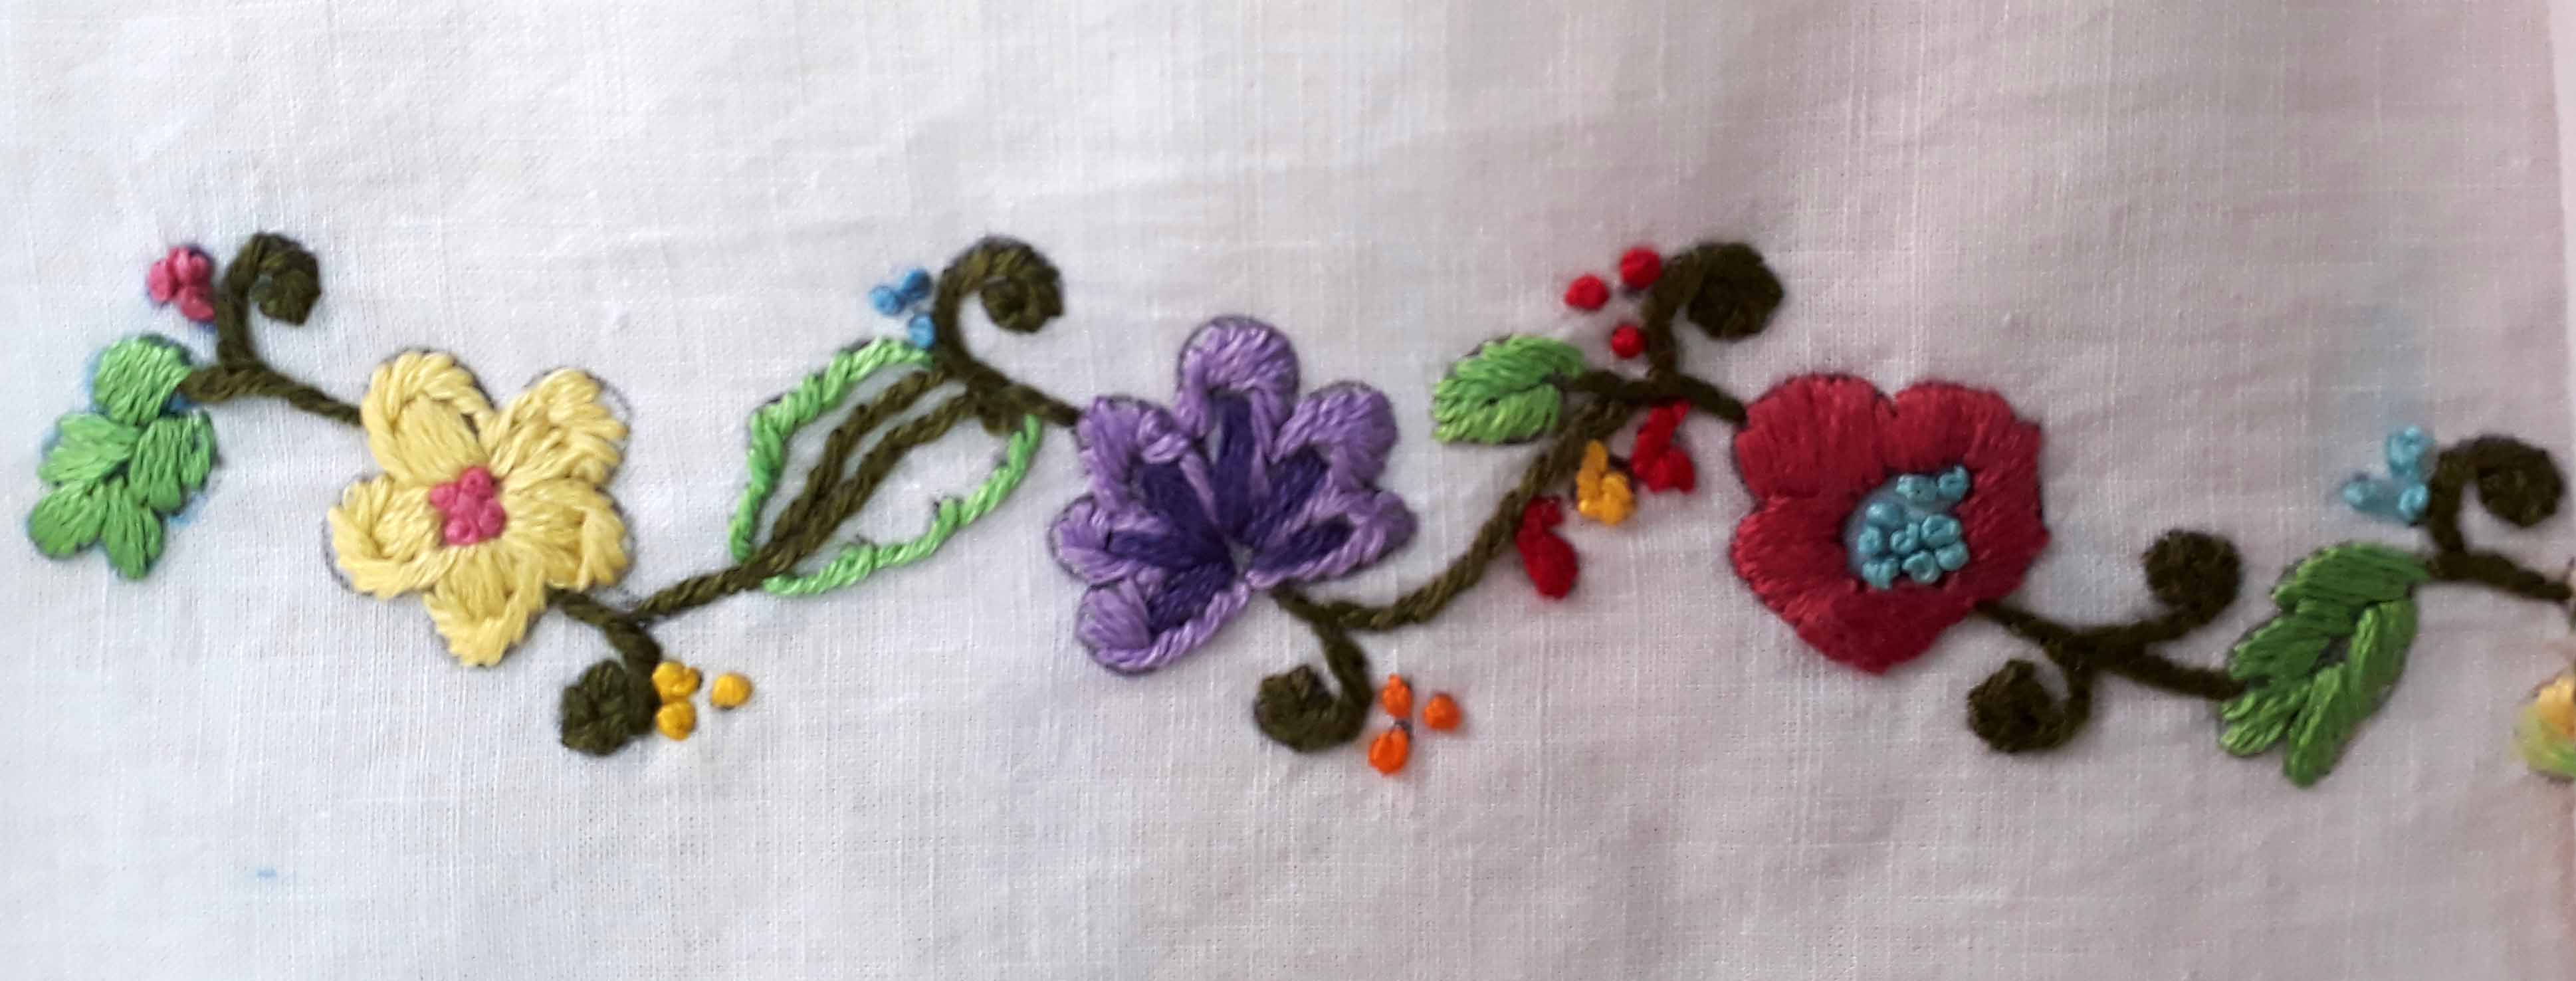 Embroidery by our students